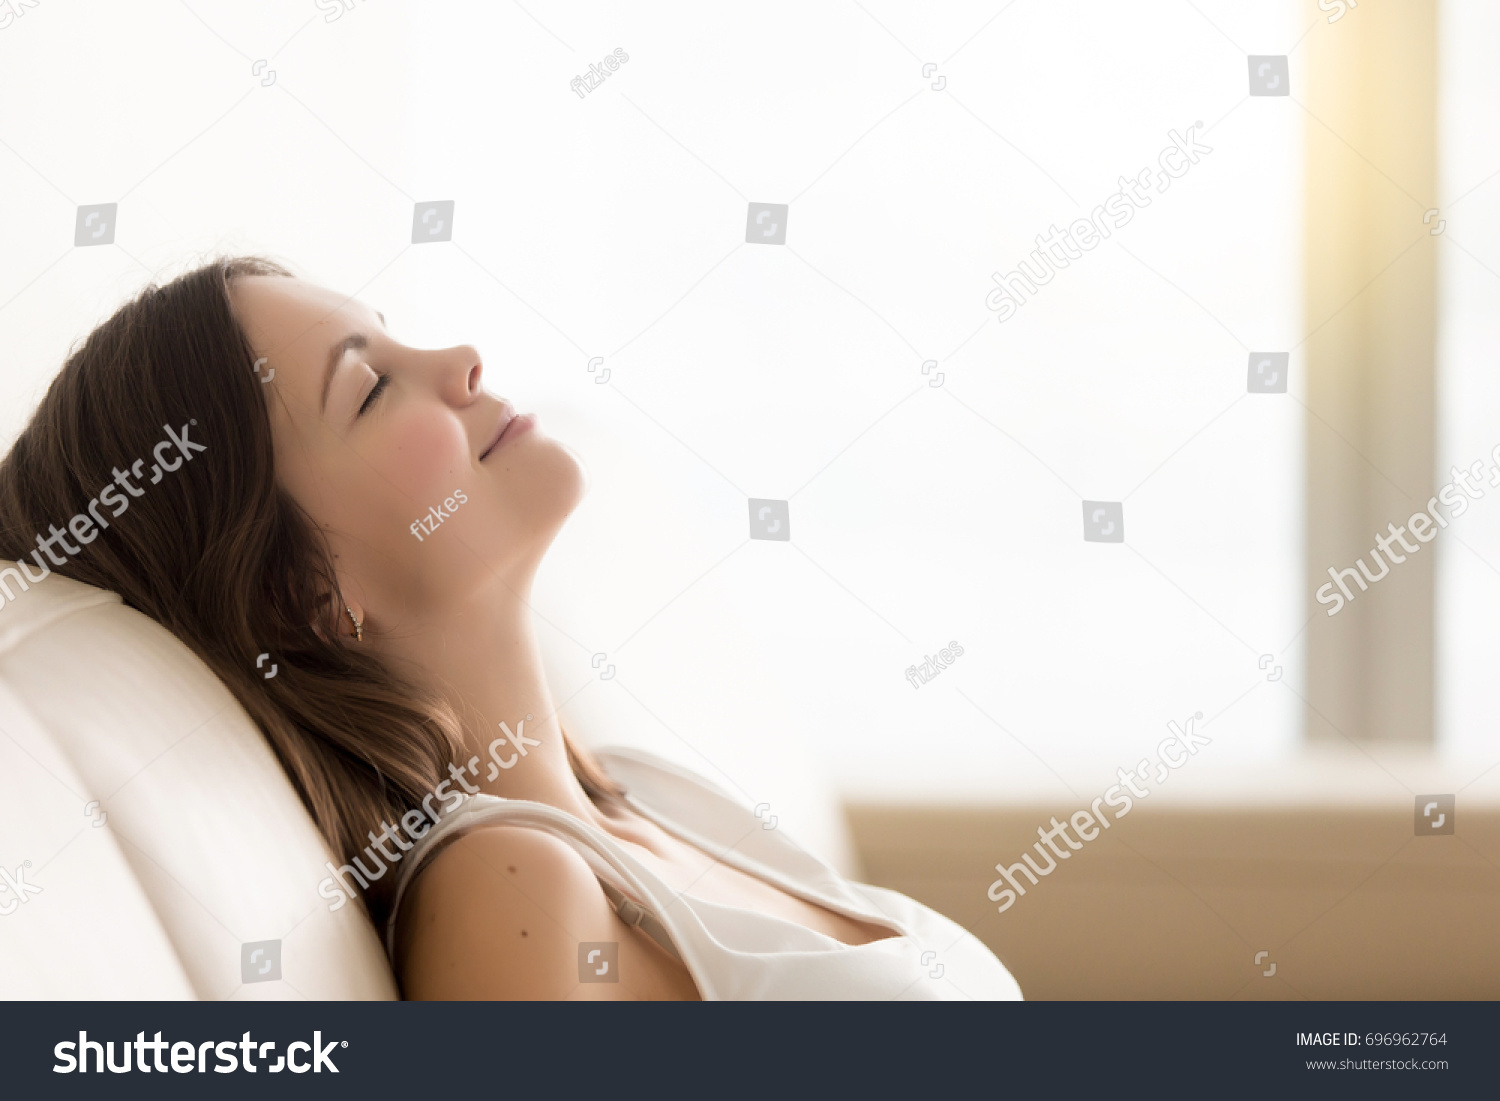 Relaxed young woman enjoying rest on comfortable sofa, calm attractive girl relaxing on couch, breathing fresh air with eyes closed, meditating at home, peace of mind, headshot portrait, copy space